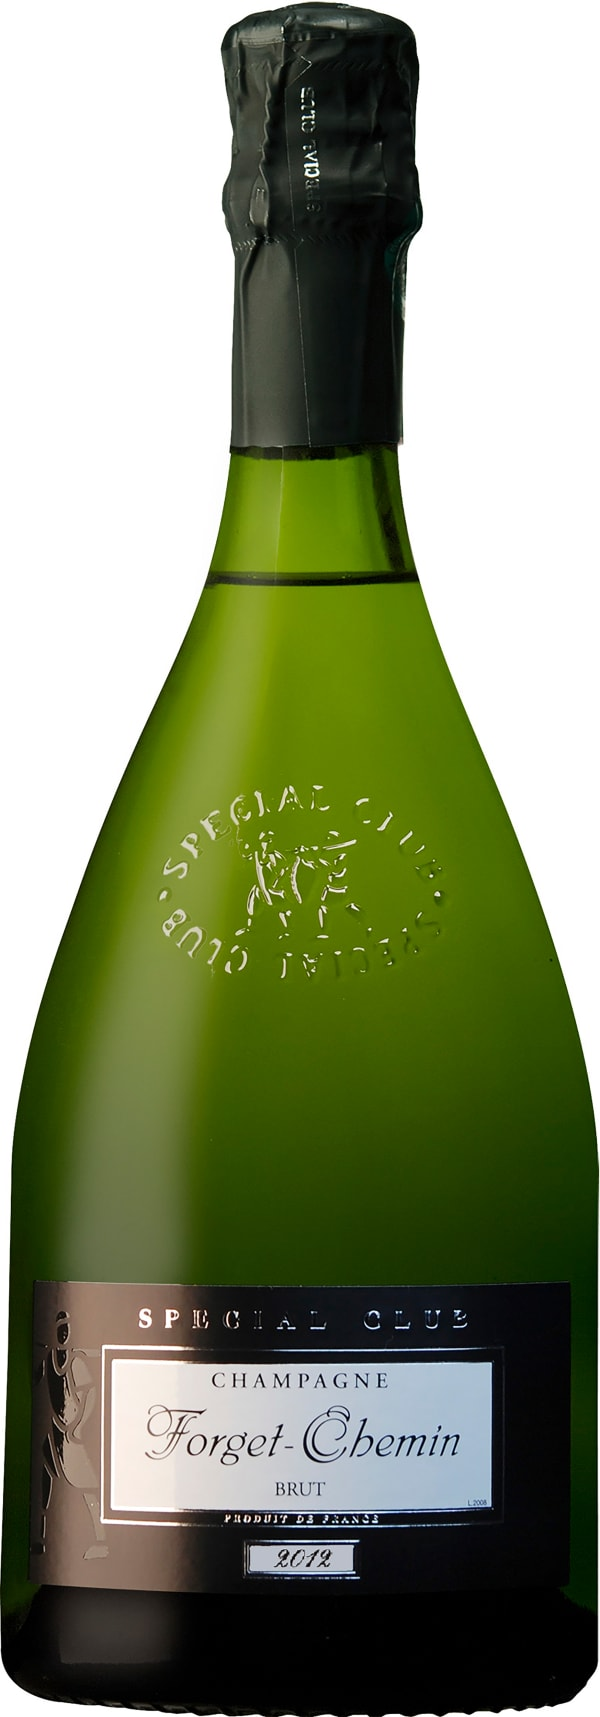 Forget-Chemin Special Club Champagne Brut 2014